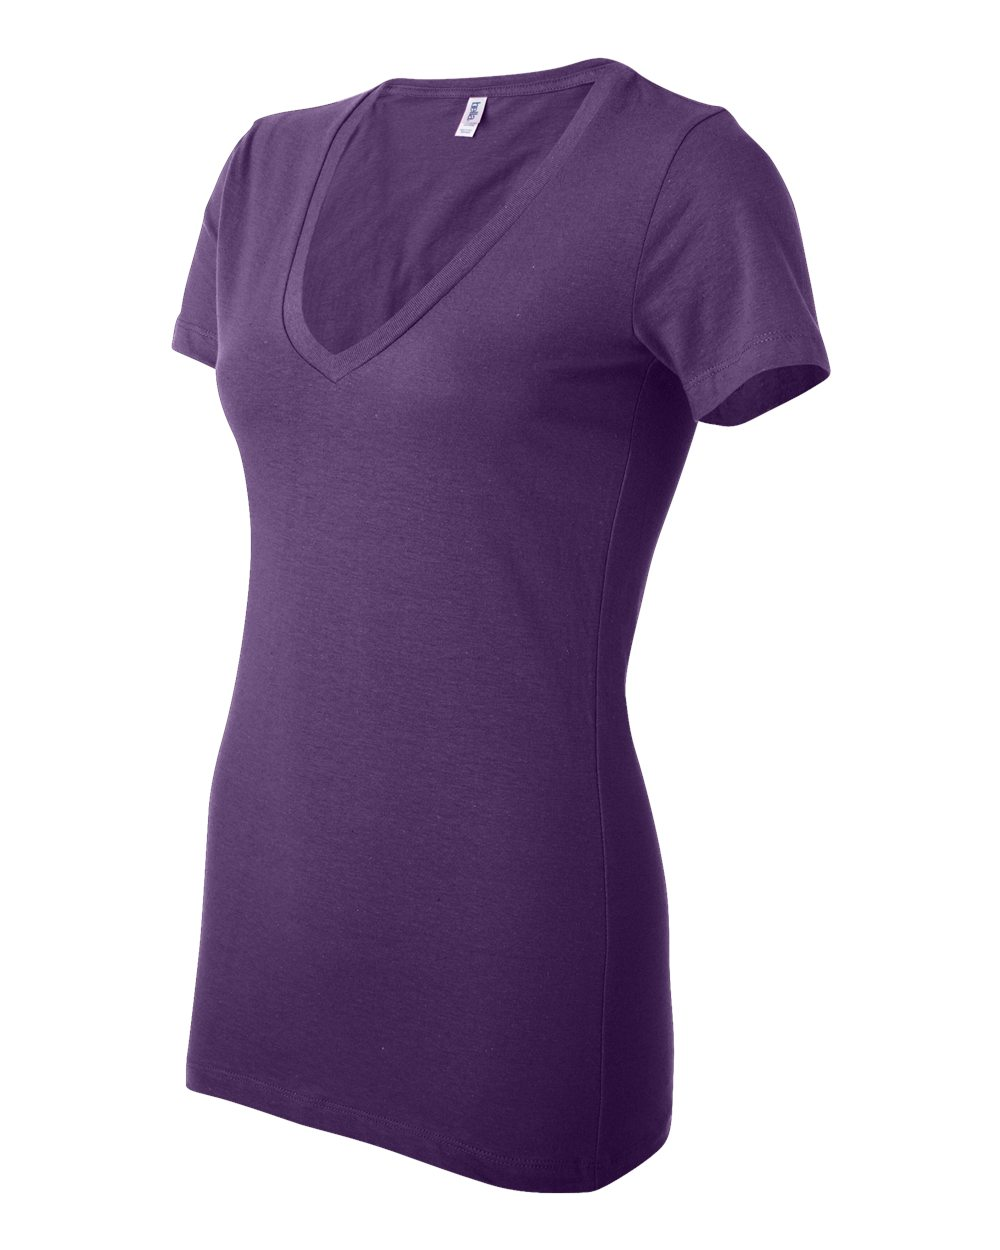 Bella-Canvas-Women-039-s-Jersey-Short-Sleeve-Deep-V-Neck-T-Shirt-B6035-S-2XL thumbnail 6